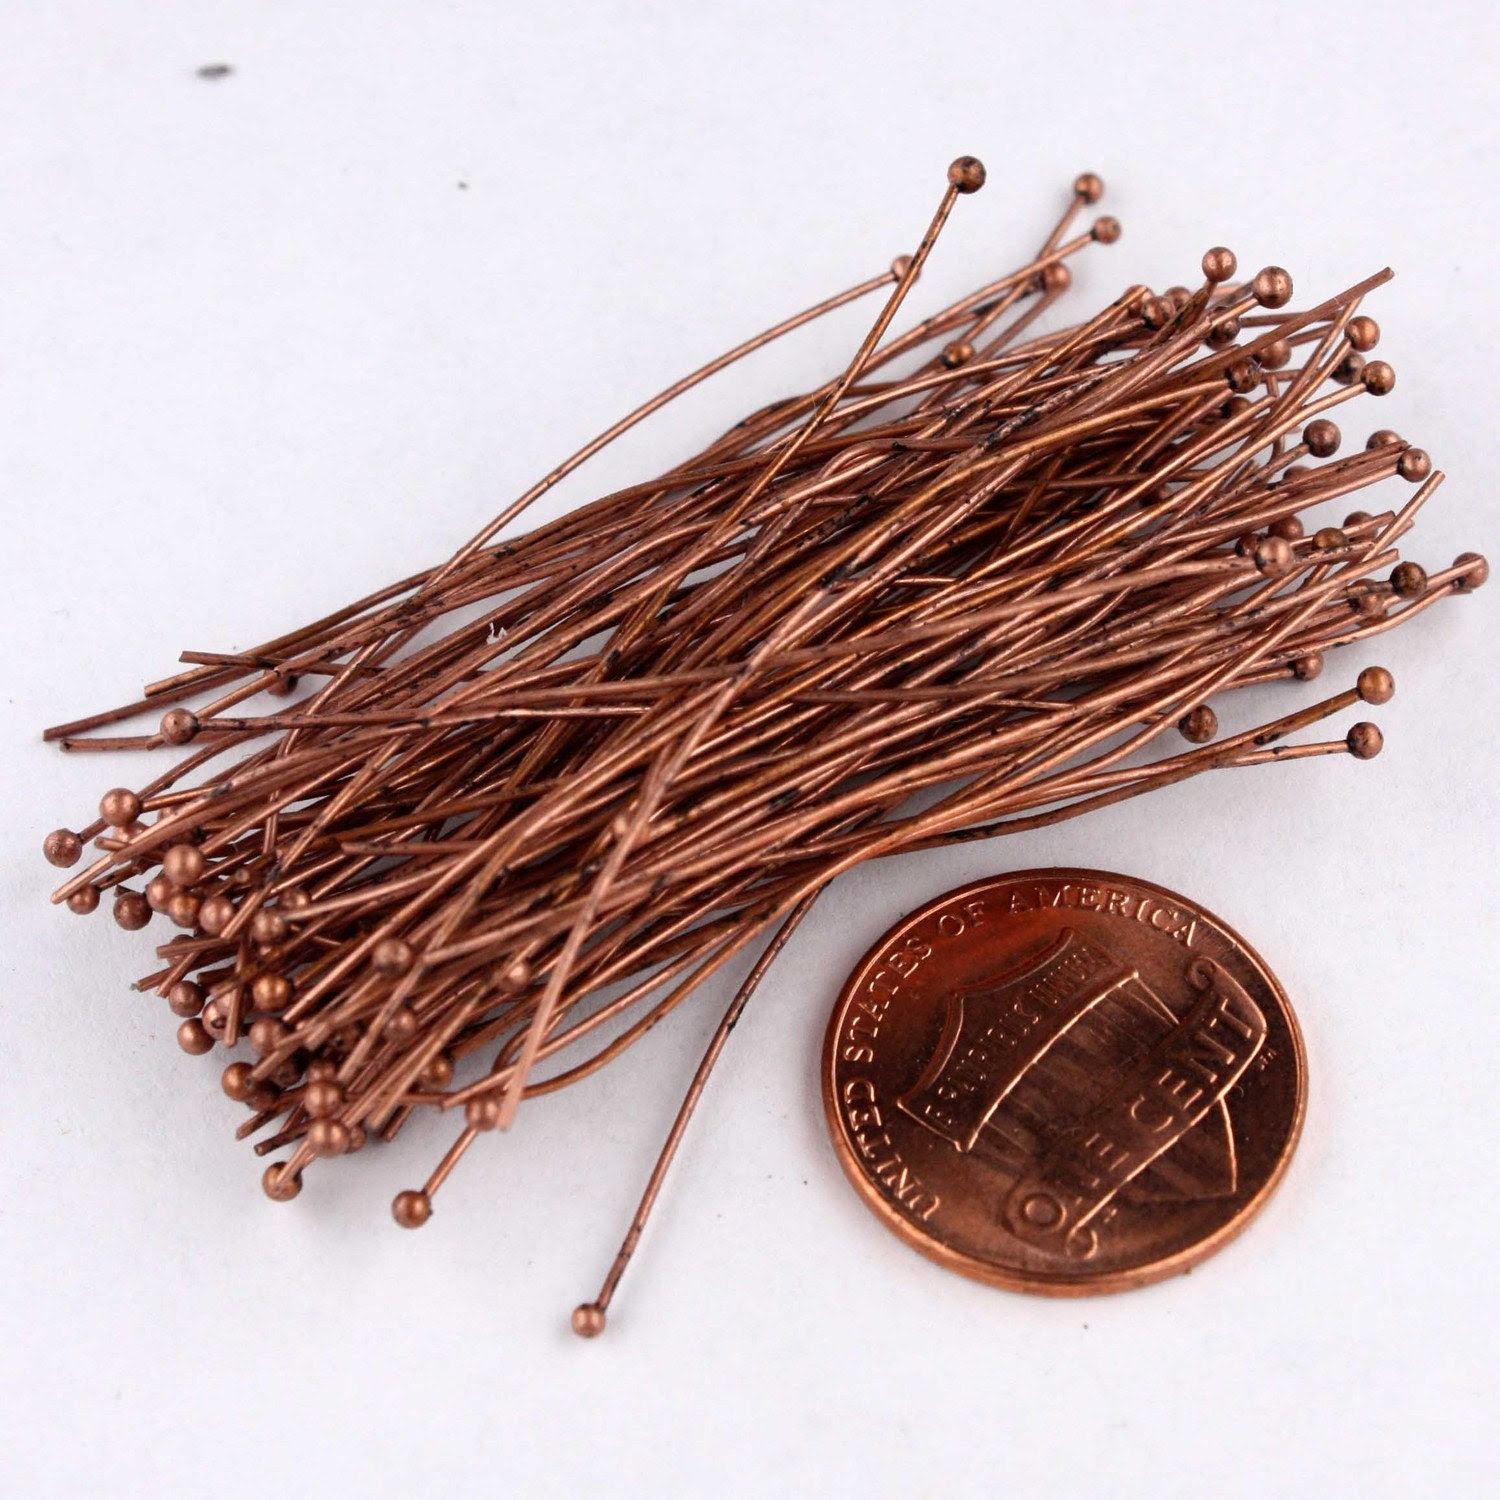 100 pcs of VINTAGE Style Antique Copper Finished on Brass Ball end headpin - 24G - 2 inches - gemplus24